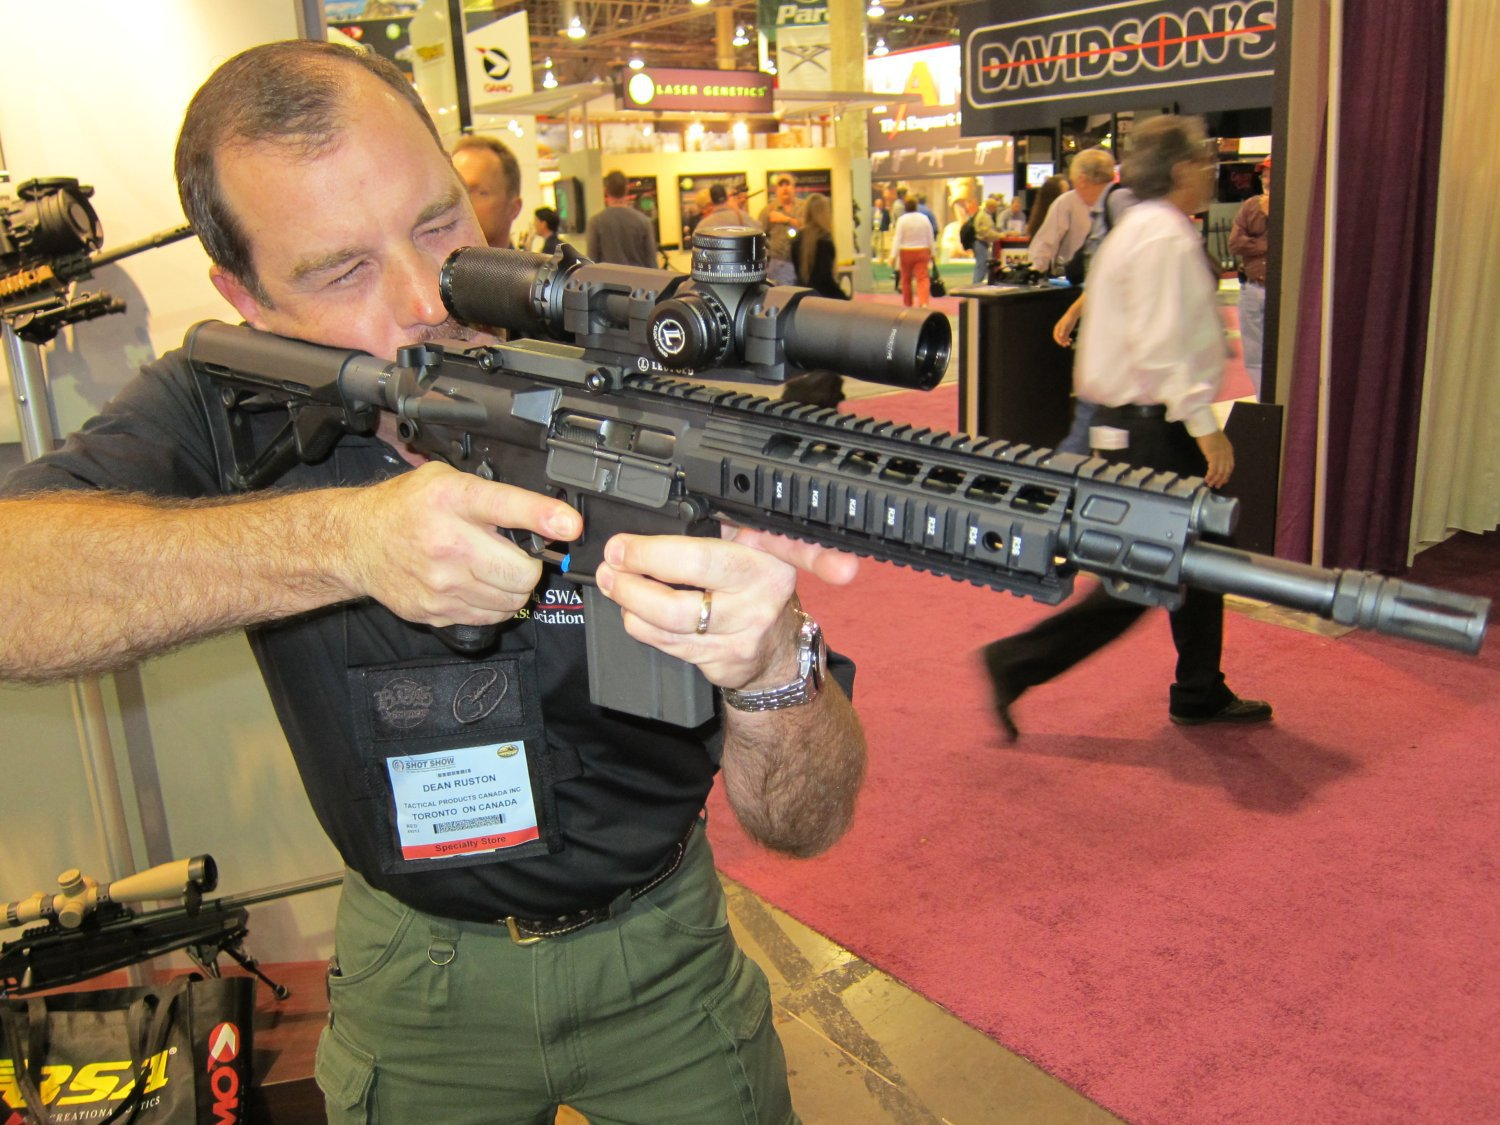 SHOT Show 2010 SIG SAUER SIG716 Gas Piston Op Rod Carbine SBR Series 2 <!  :en  >SIG Sauer SIG516 (5.56mm) and SIG716 (7.62mm) Short Stroke Gas Piston/Op Rod System Tactical AR Rifle/Carbine/SBR Series at SHOT Show 2010 (Photos!) <!  :  >